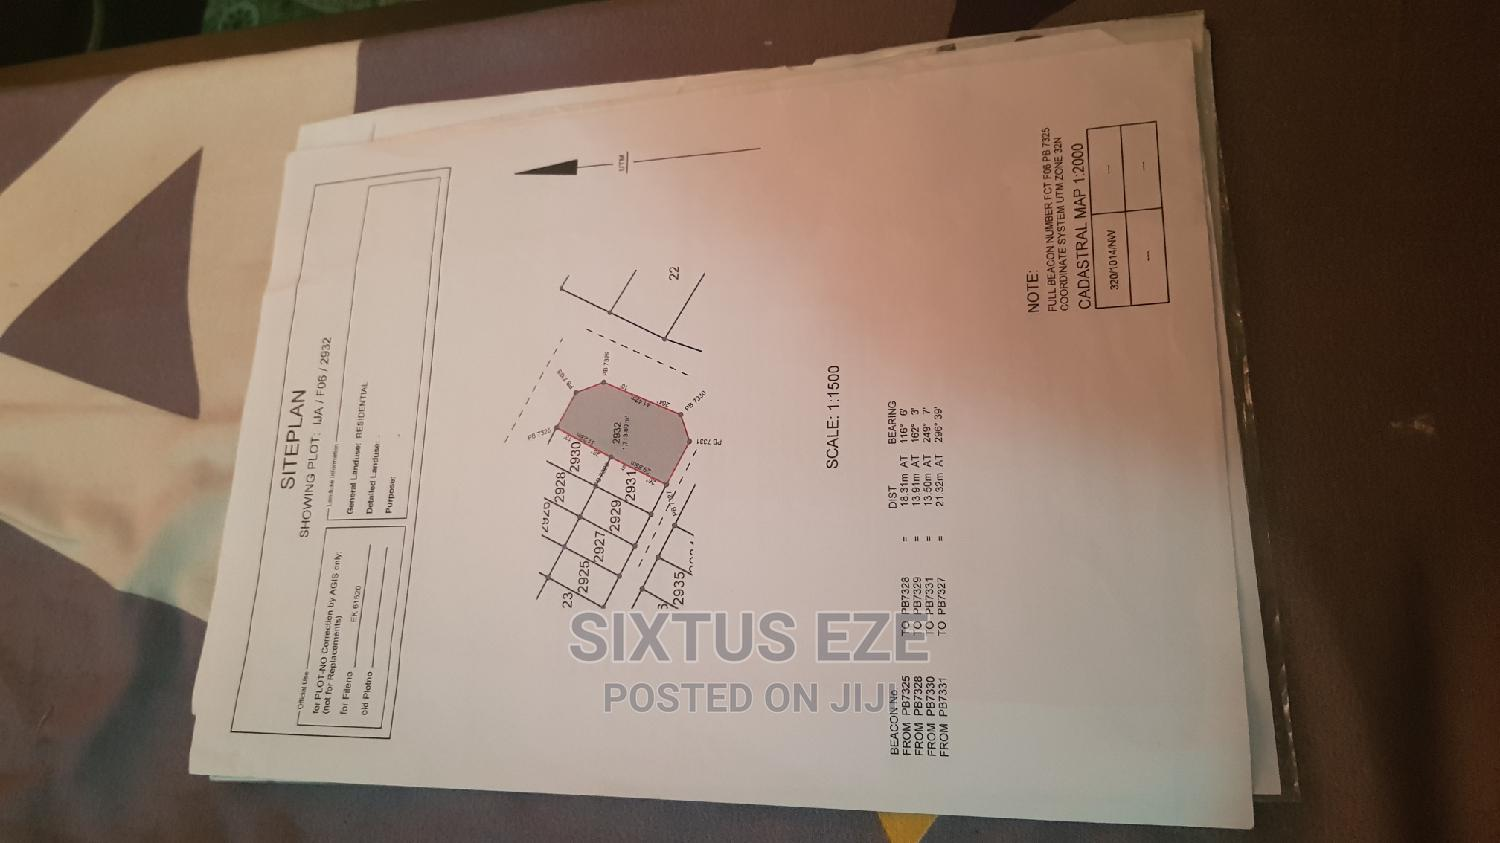 1,700sqm With R of O in Ija, FO6, Kubwa, Abj. | Land & Plots For Sale for sale in Kubwa, Abuja (FCT) State, Nigeria